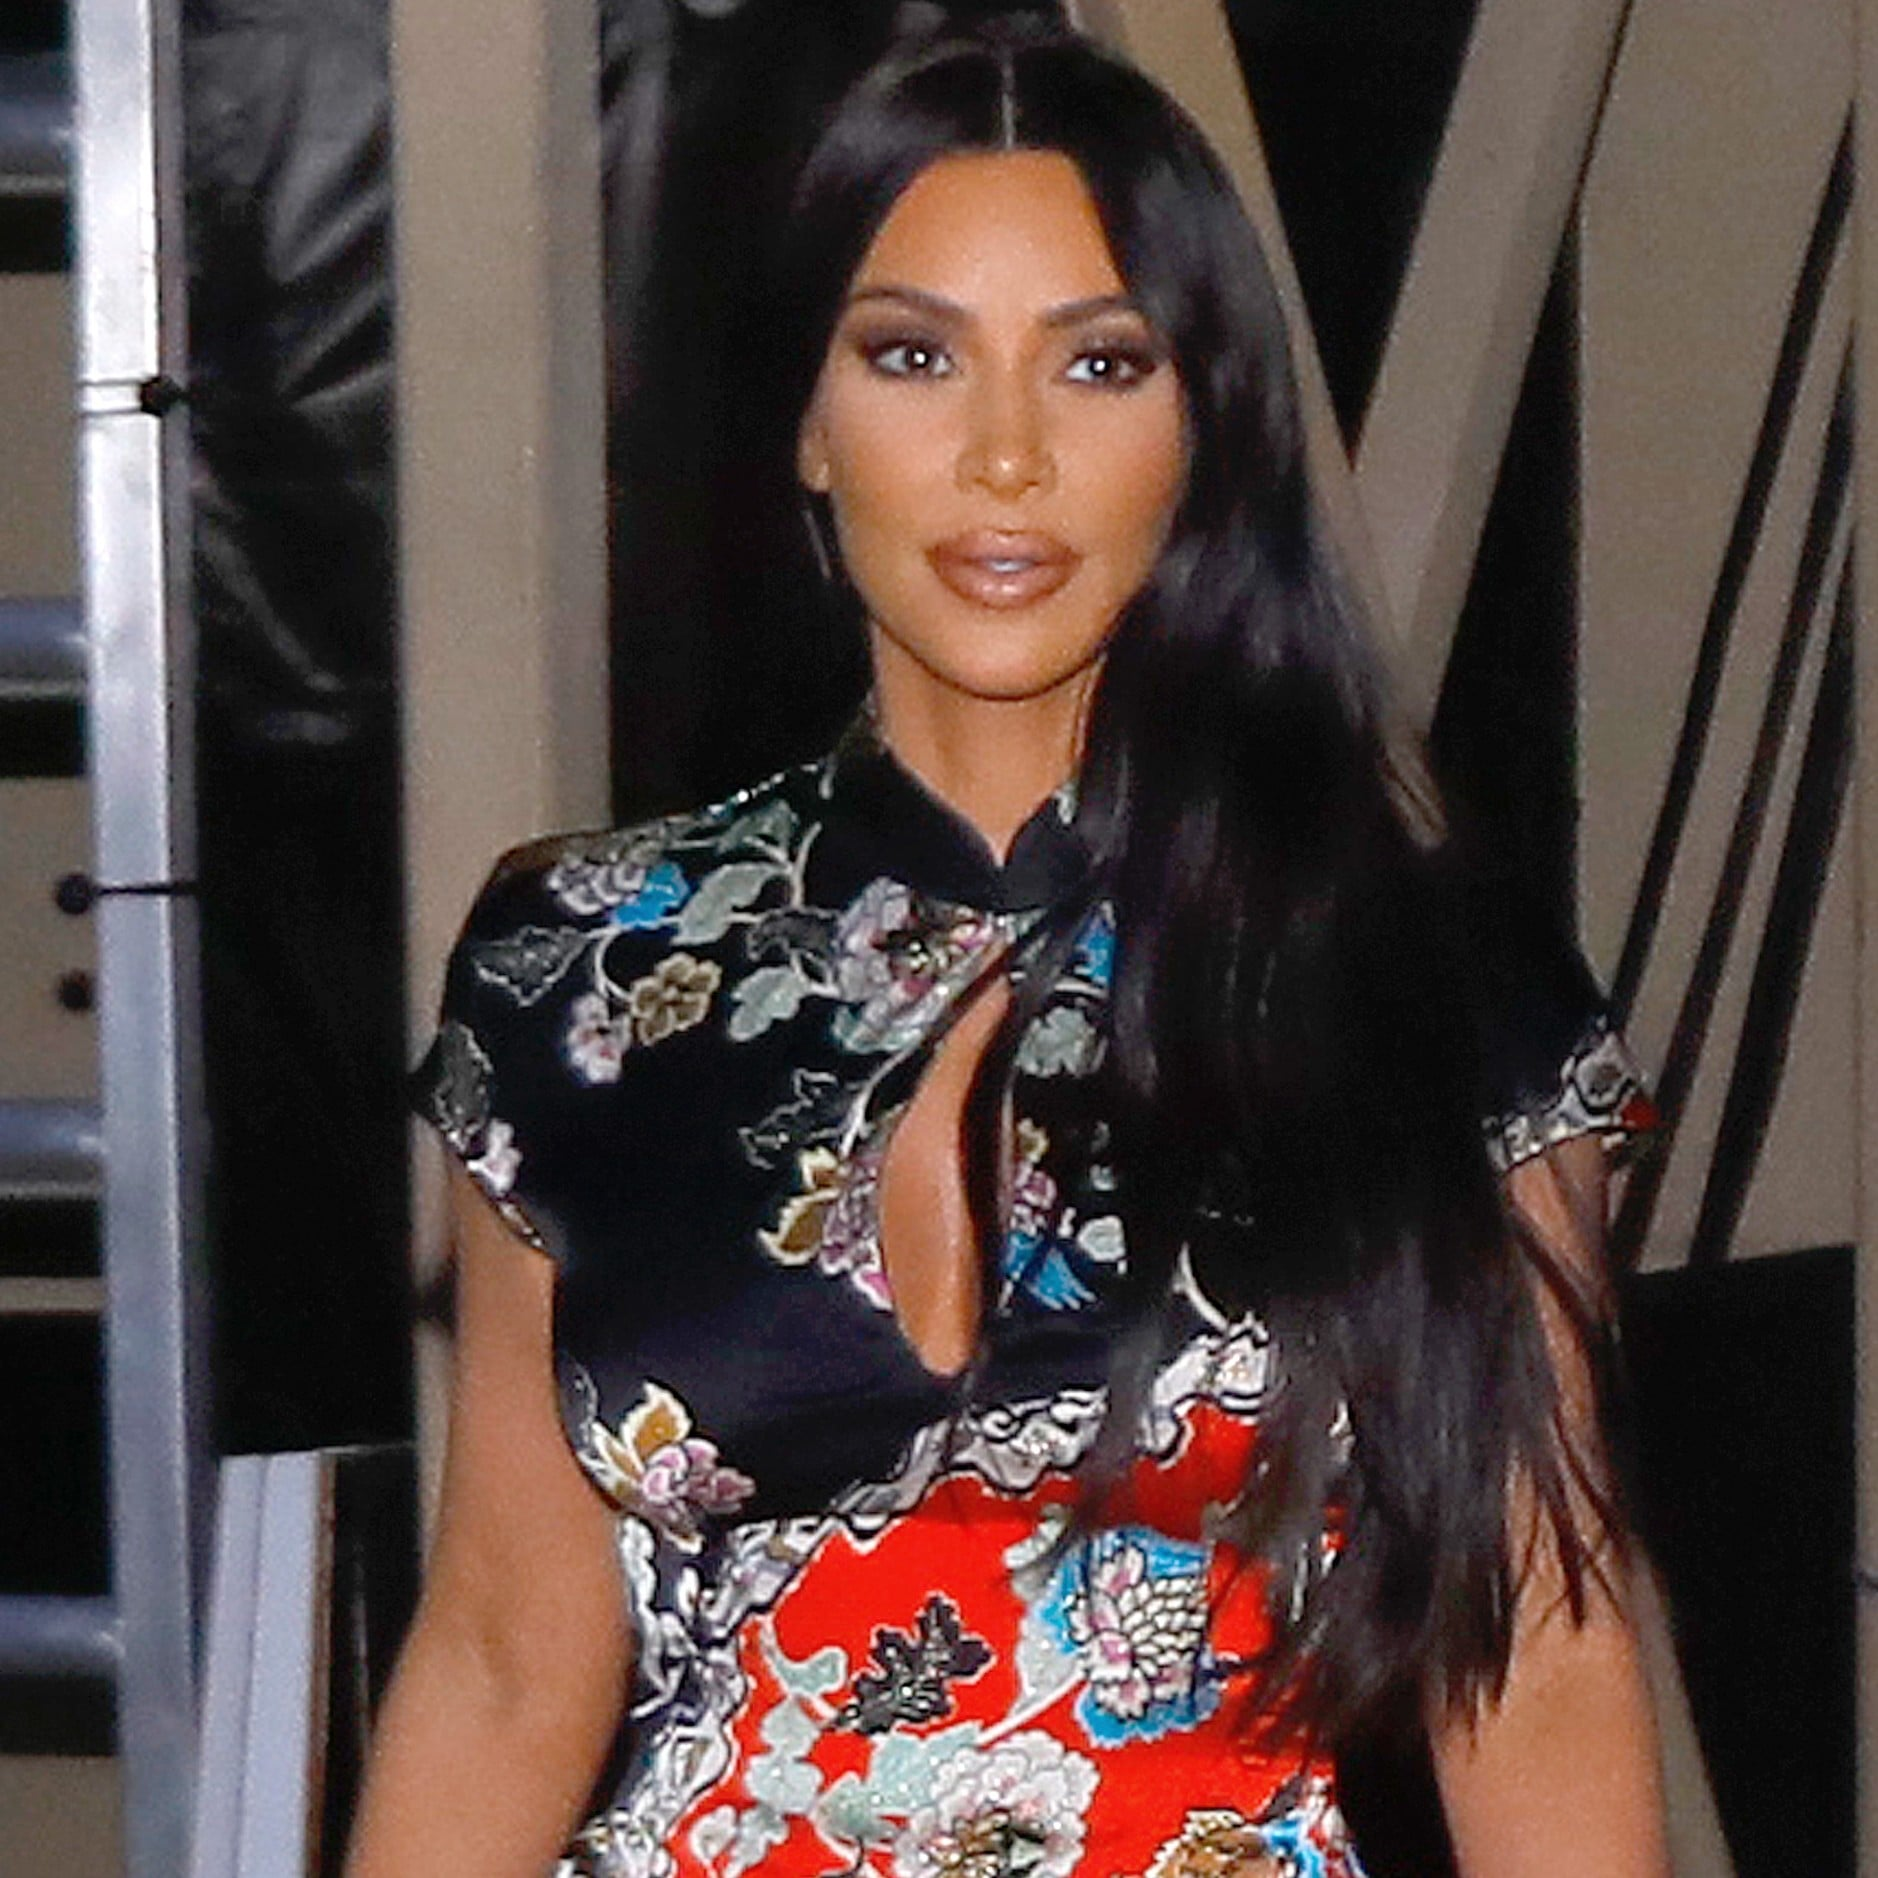 Kim Kardashian Floral Minidress at Jimmy Kimmel Live 2019